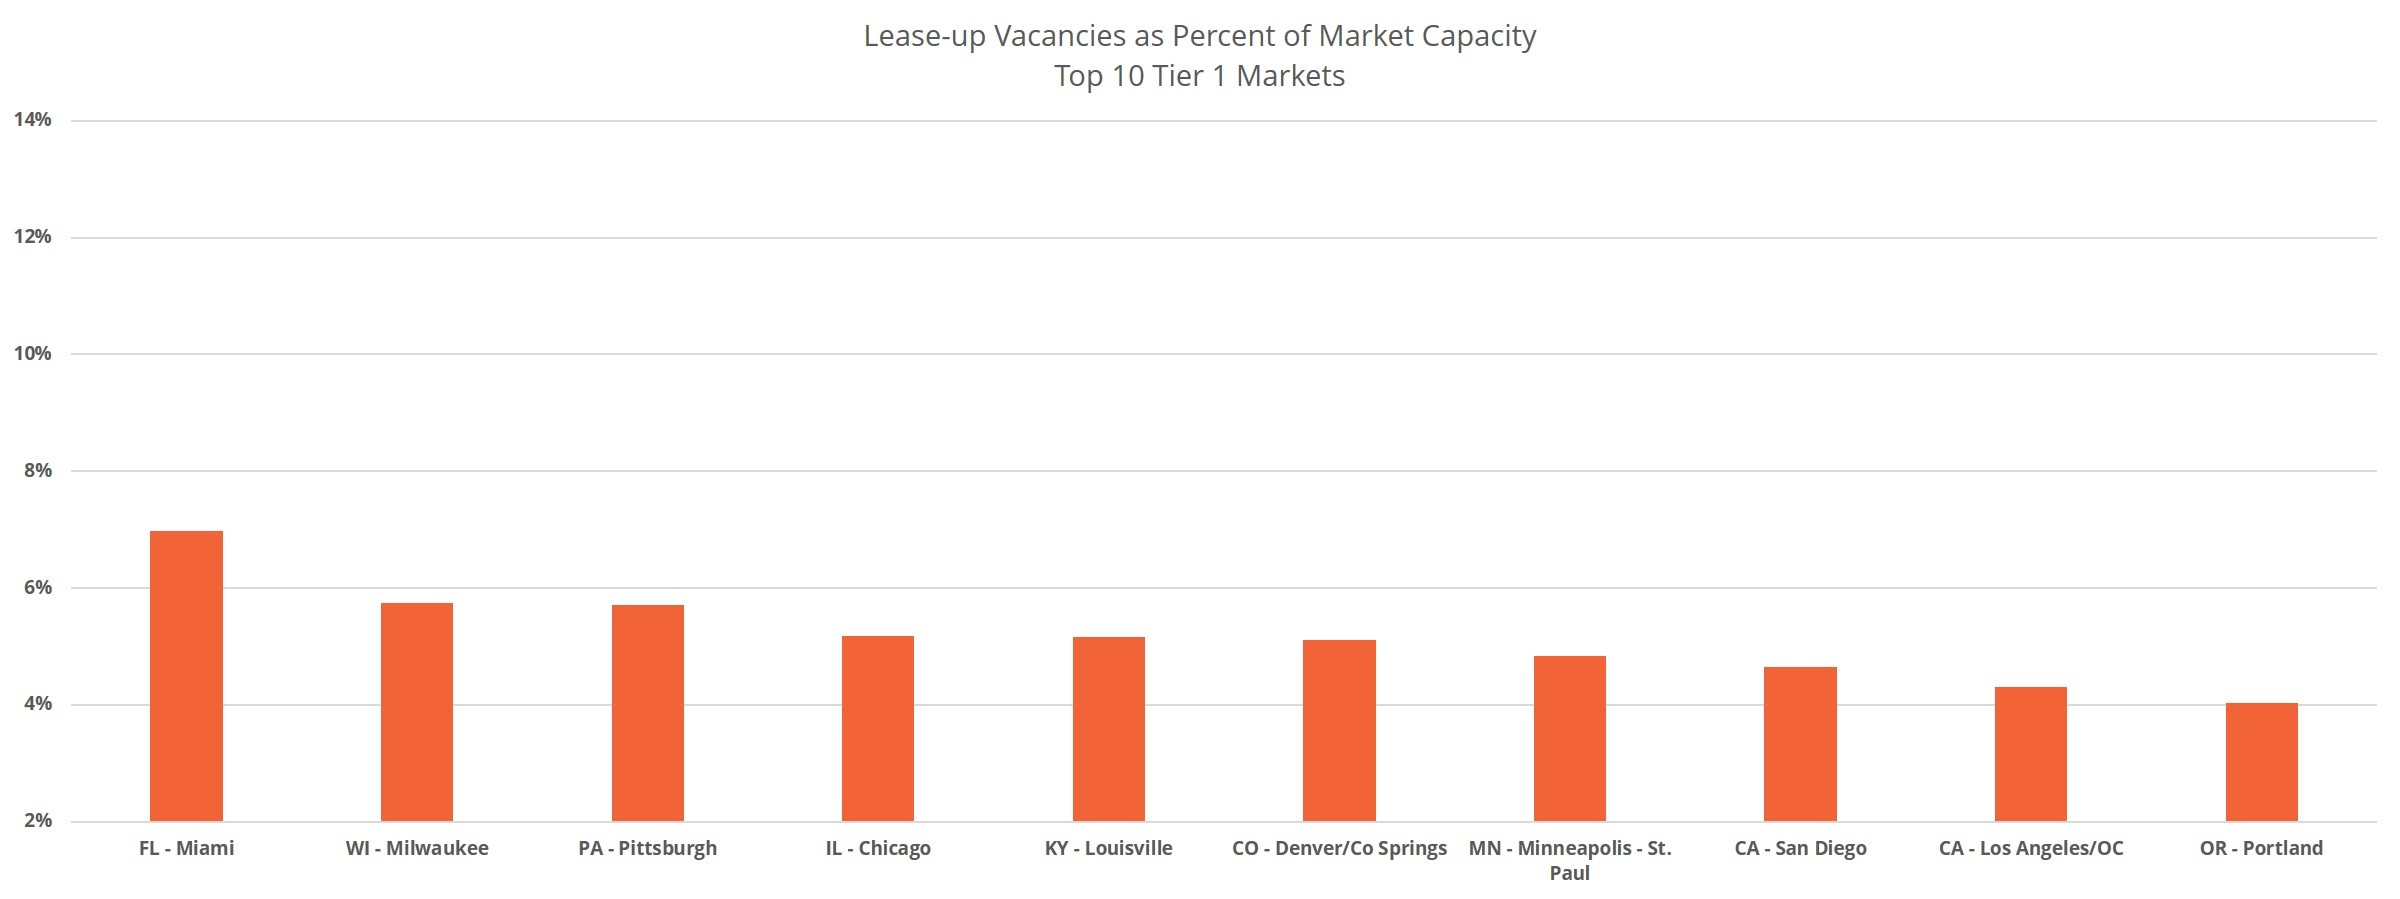 Lease-Up Vacancies as Percent of Capacity